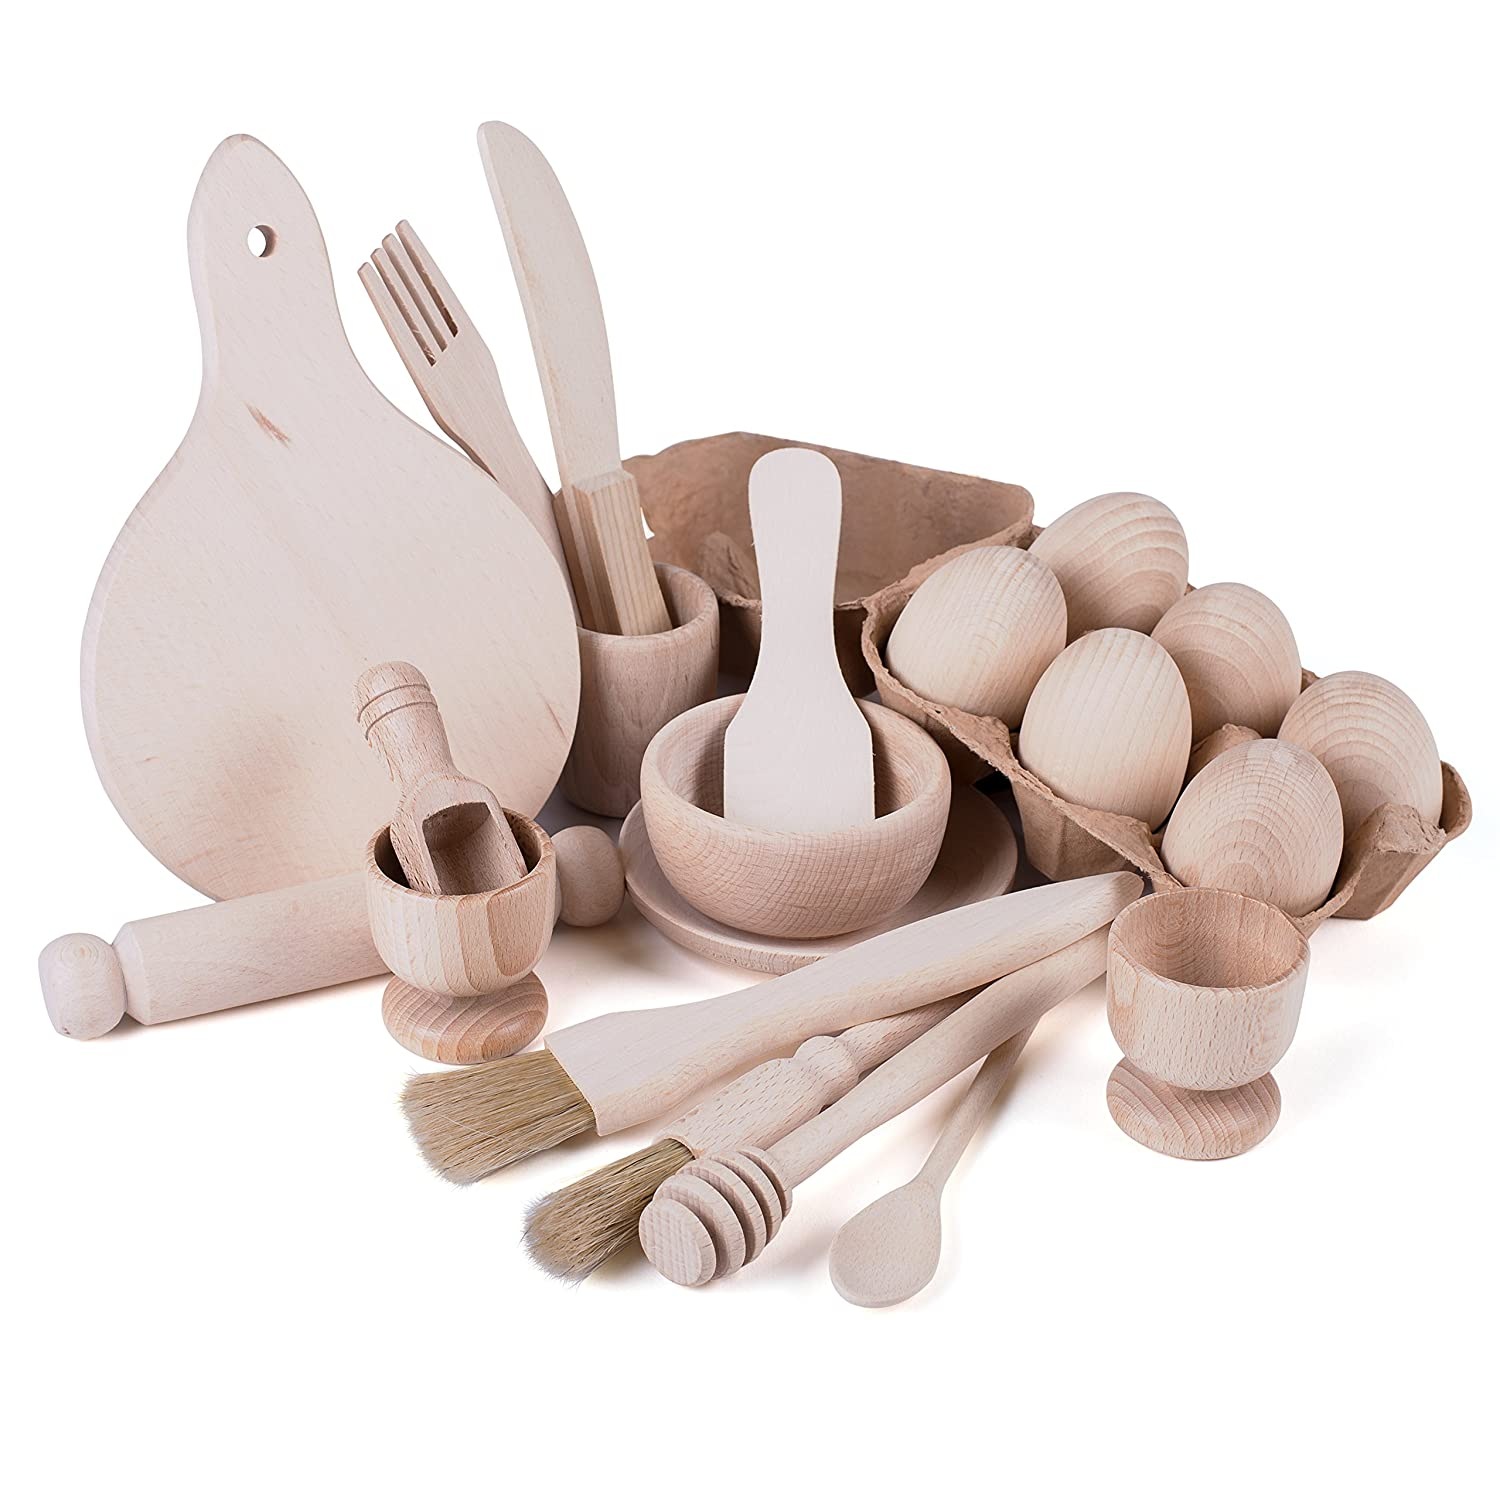 Complete Wooden Kitchen Play Set - Children's Cooking Utensils and Accessories - 20 pieces - EYFS - Treasure Basket TreasureToys WK20